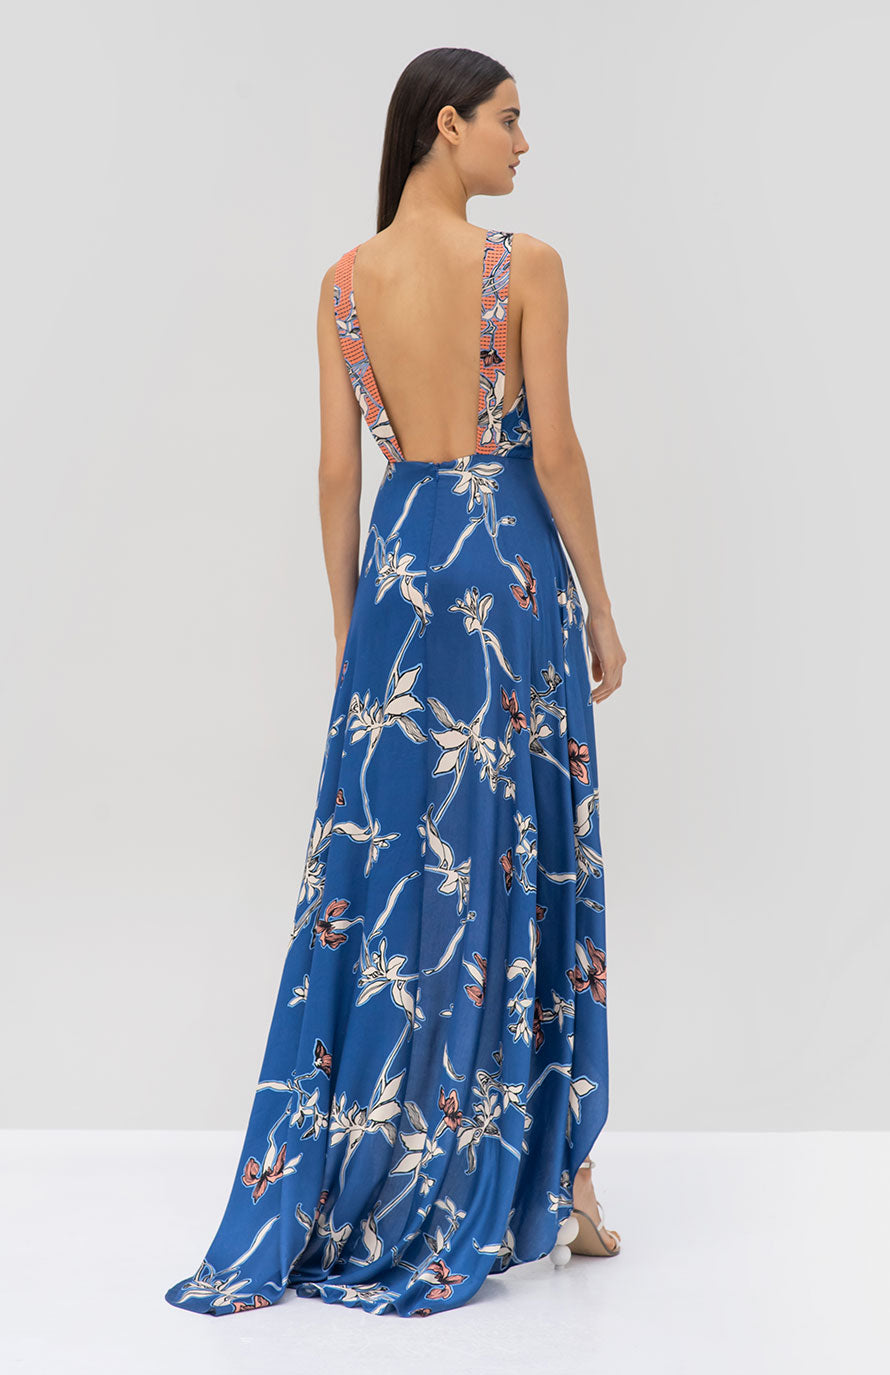 Alexis Dimerra Dress Royal Blue Orchid - Rear View